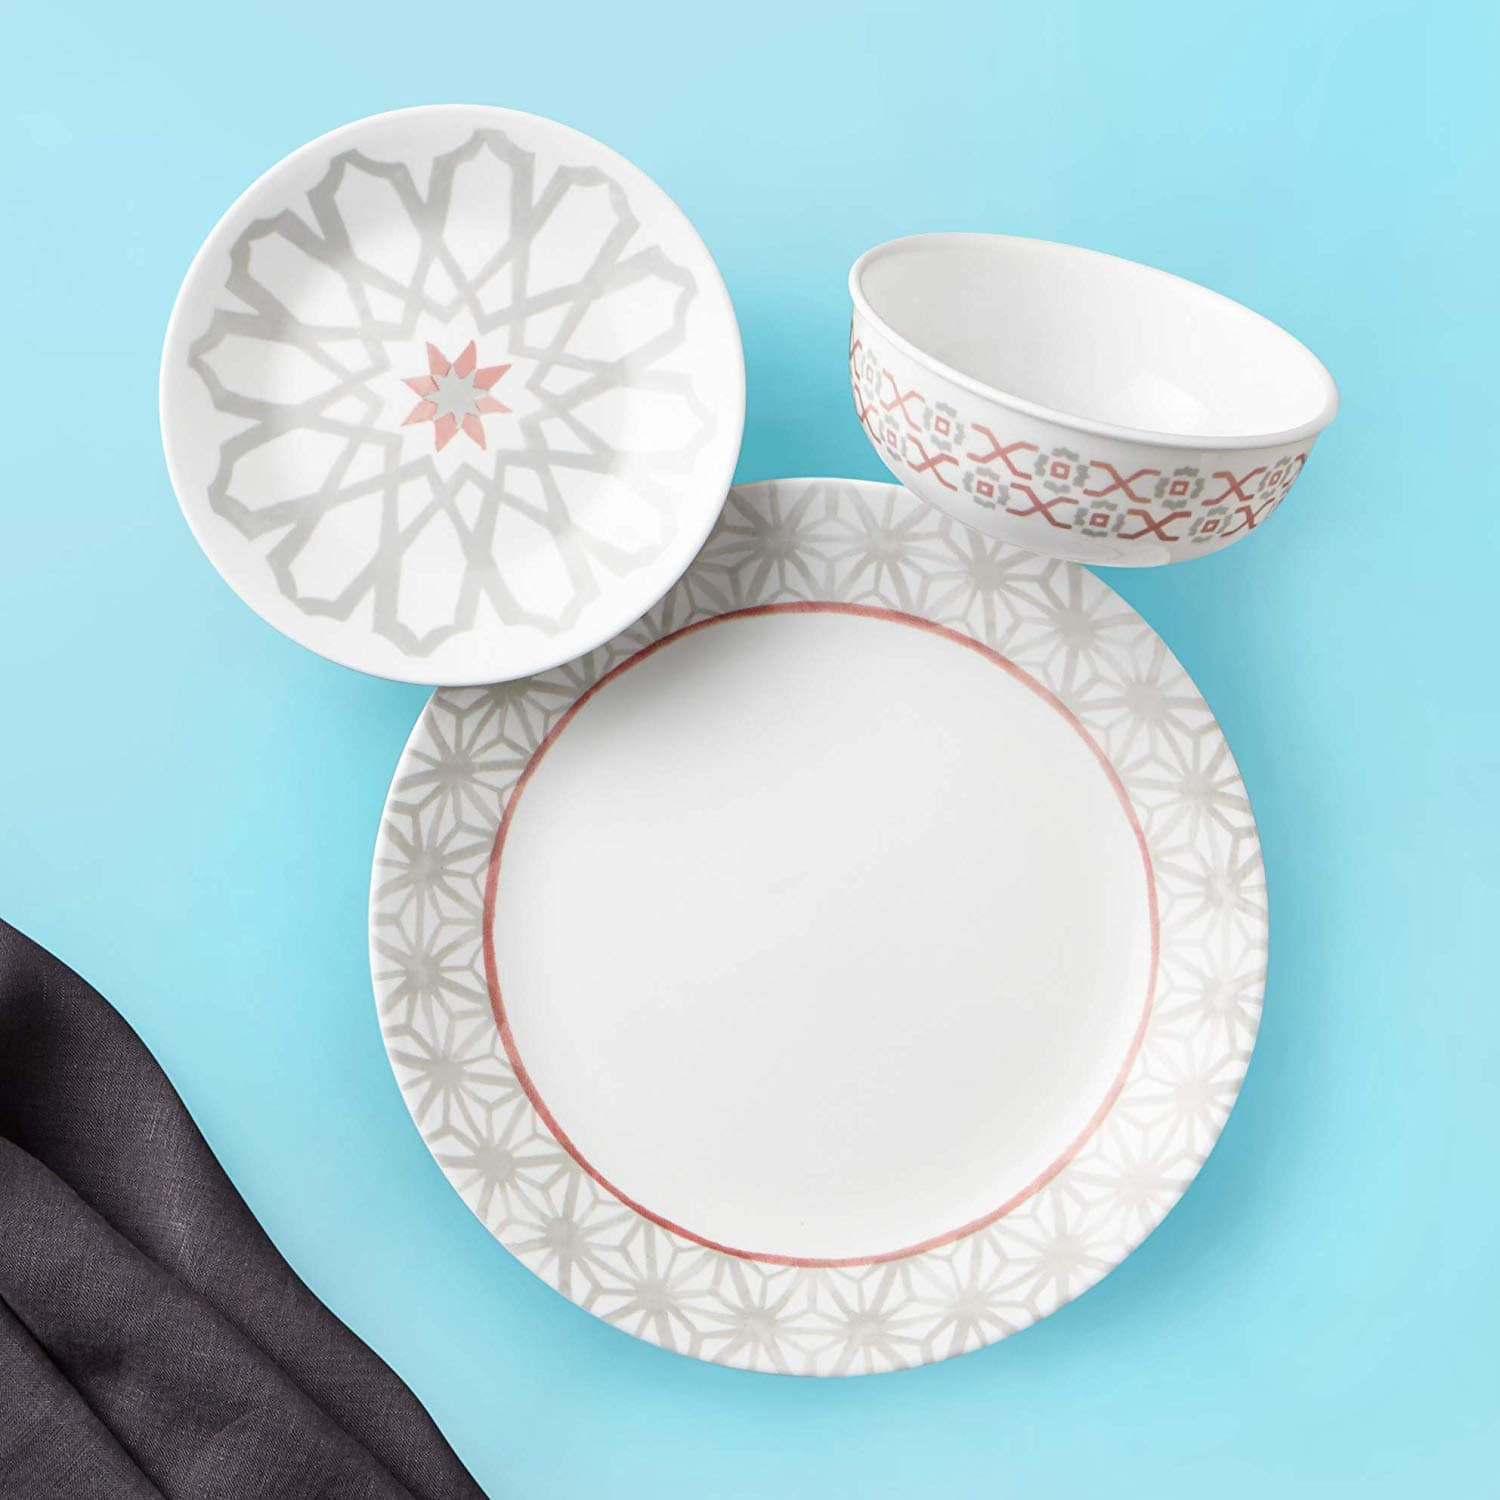 Corelle 18-Piece Service for 6, Chip Resistant Dinnerware Set, Amalfi Rosa or Terrazzo Verde - $48.99